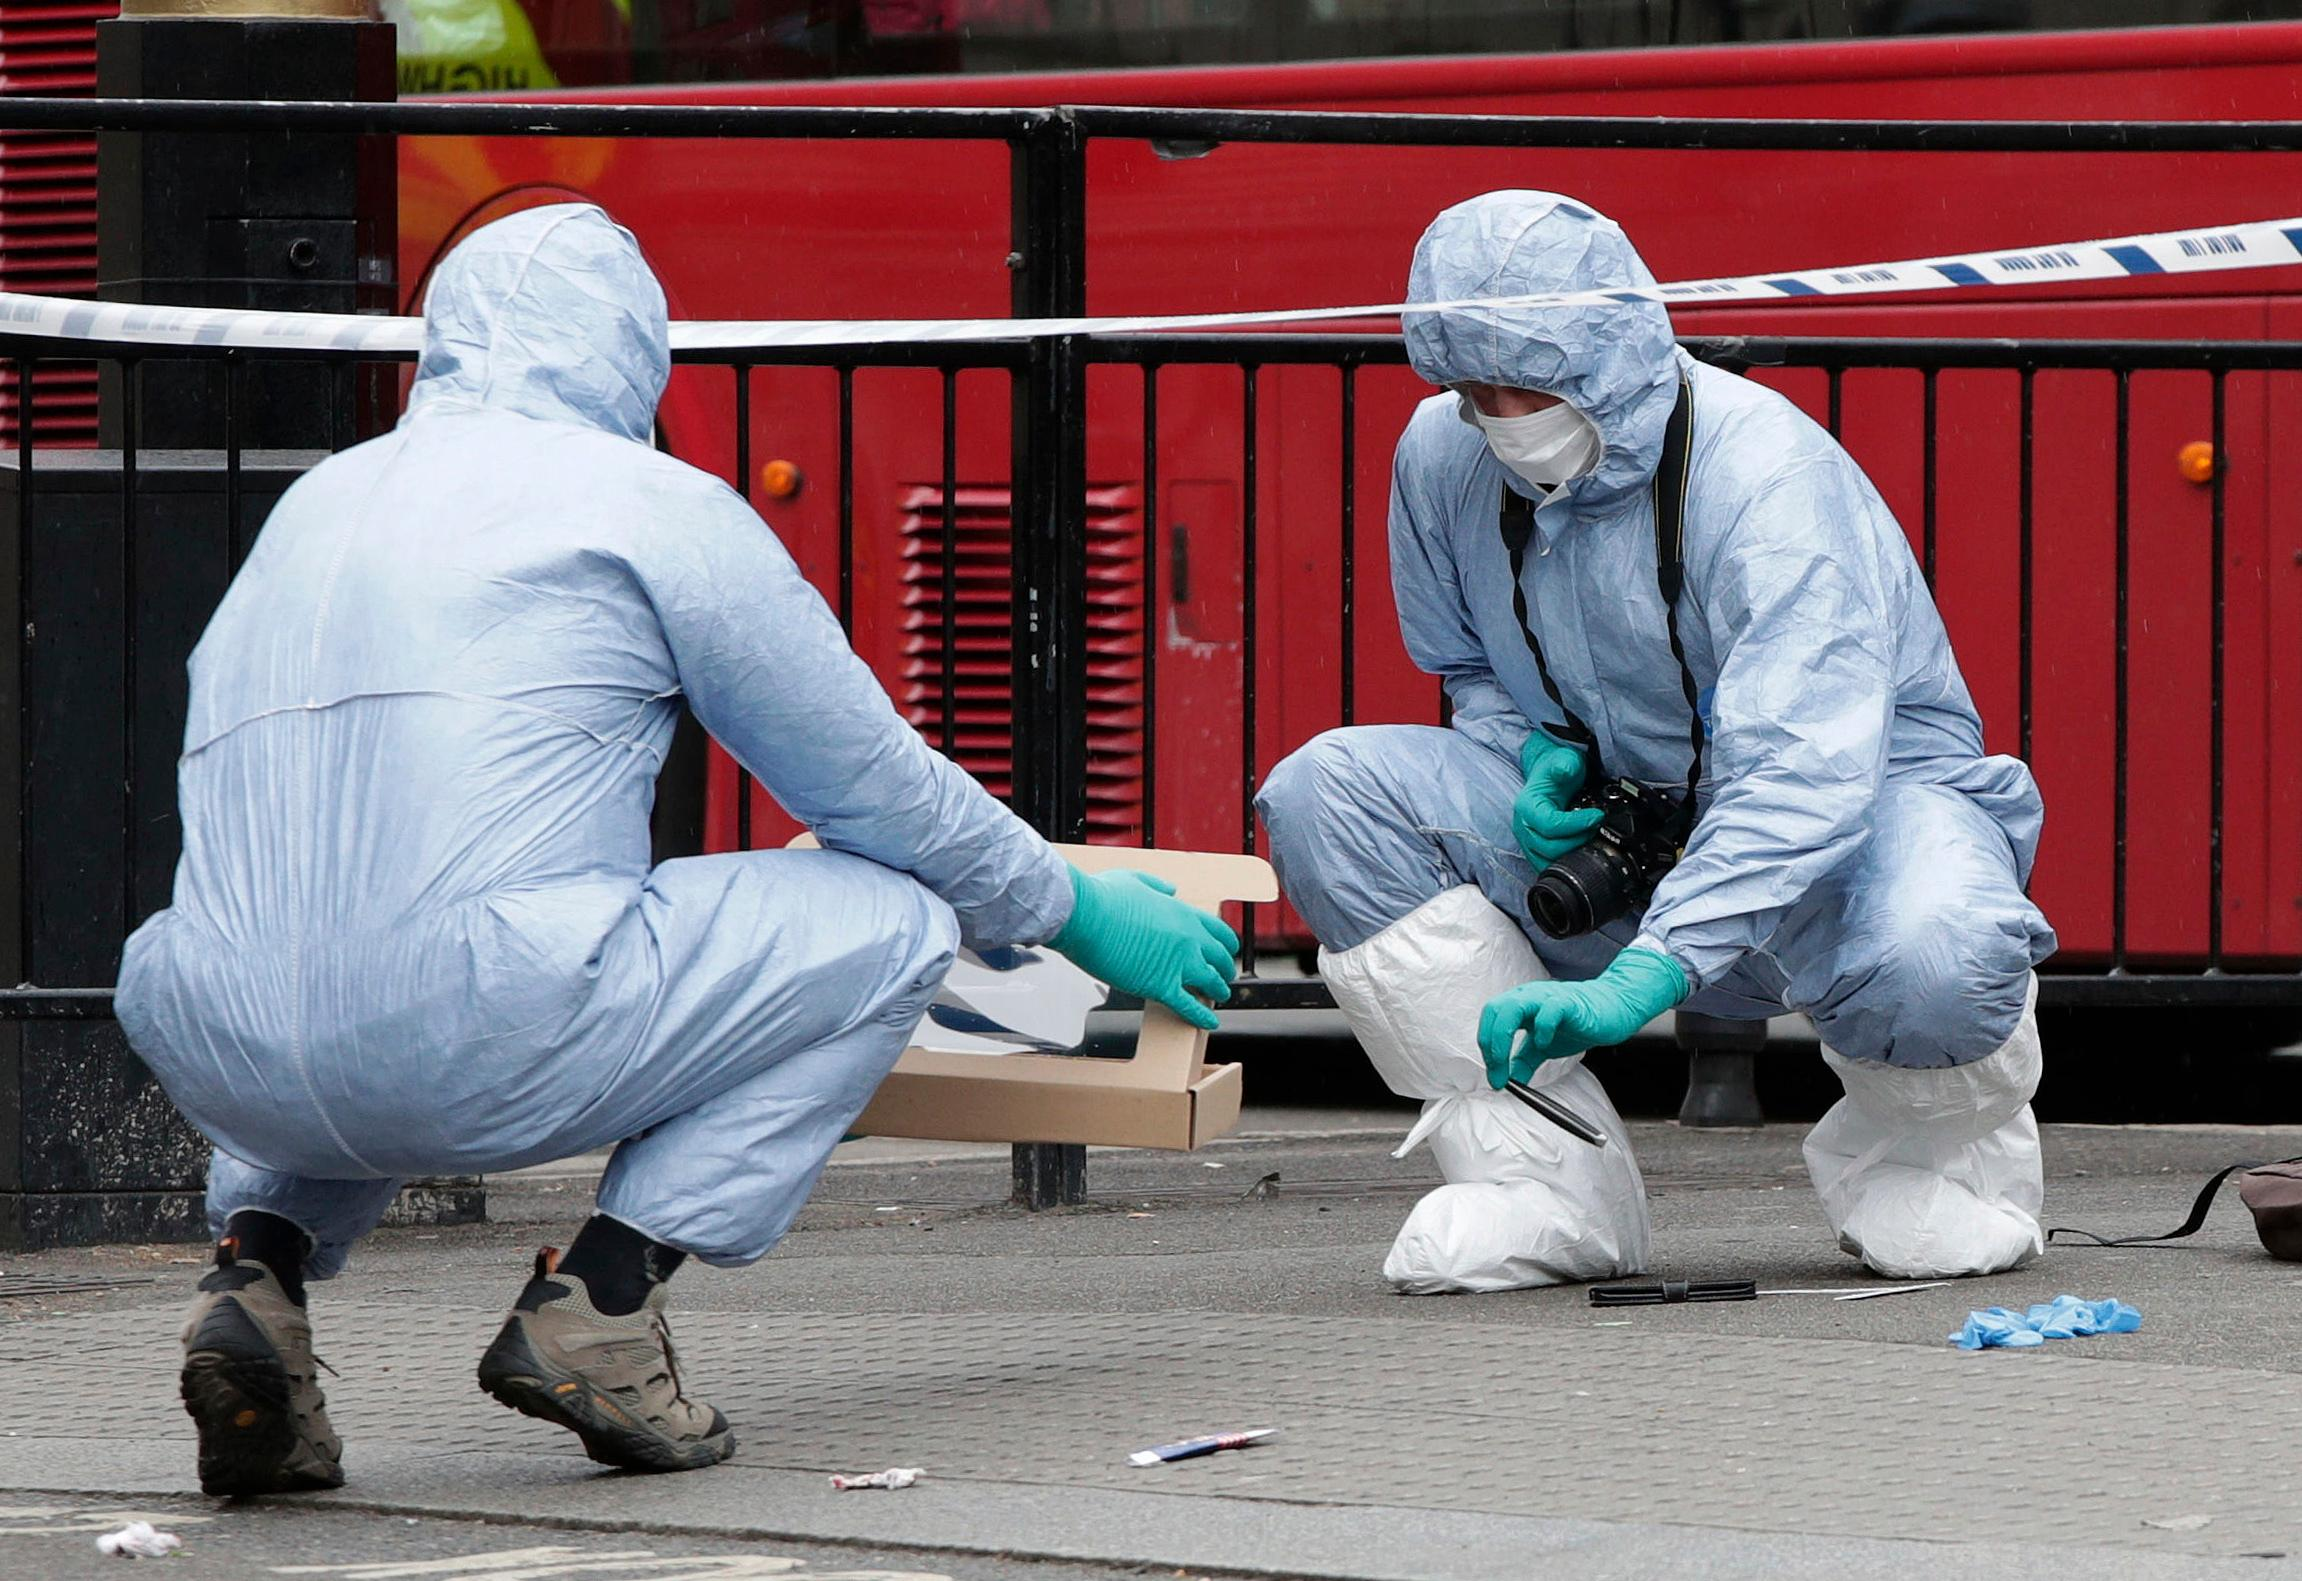 Police forensic officers attend the scene after a person was arrested following an incident in Whitehall in London, Thursday April 27, 2017. London police arrested a man for possession of weapons Thursday near Britain's Houses of Parliament. (Yui Mok/PA via AP)